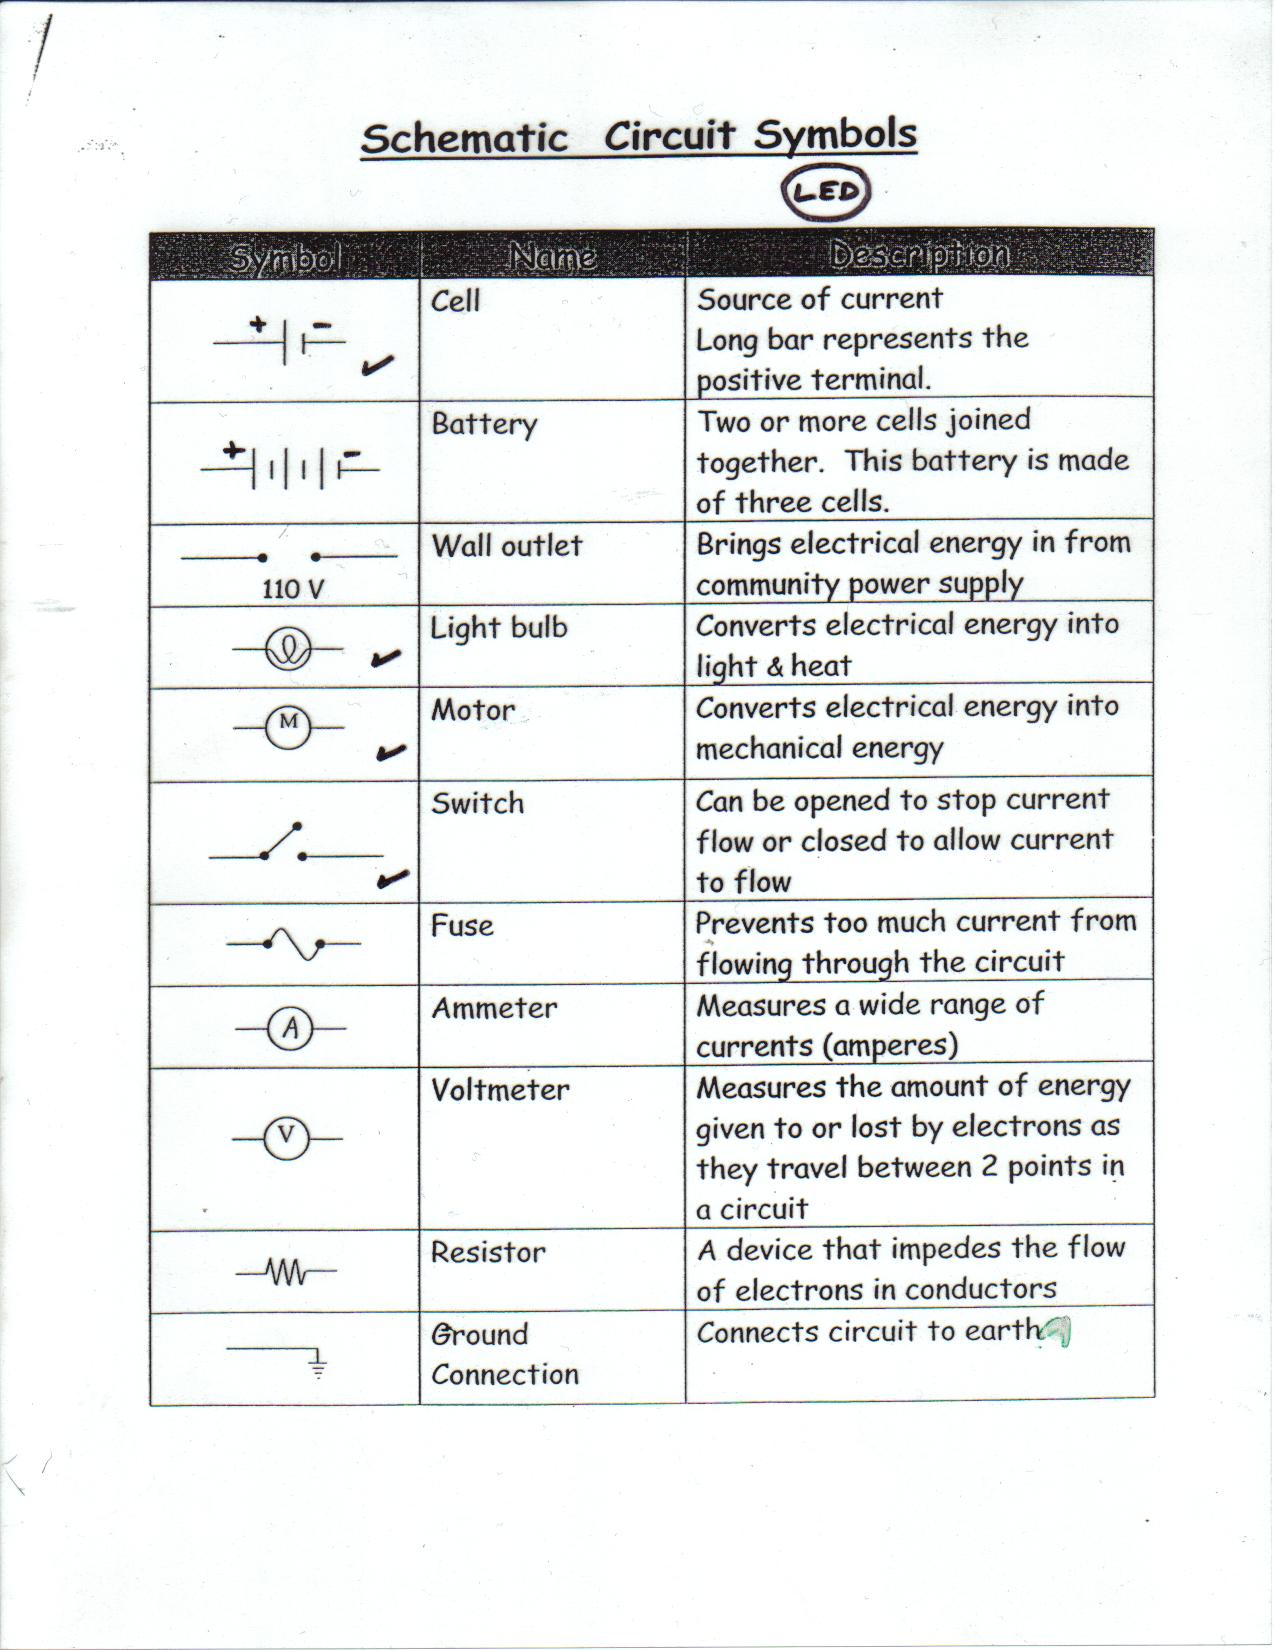 Electricity Circuit Symbols Worksheet Not Lossing Wiring Diagram Chart Schematic Pltw Answers Symbol For Basic Elecricity